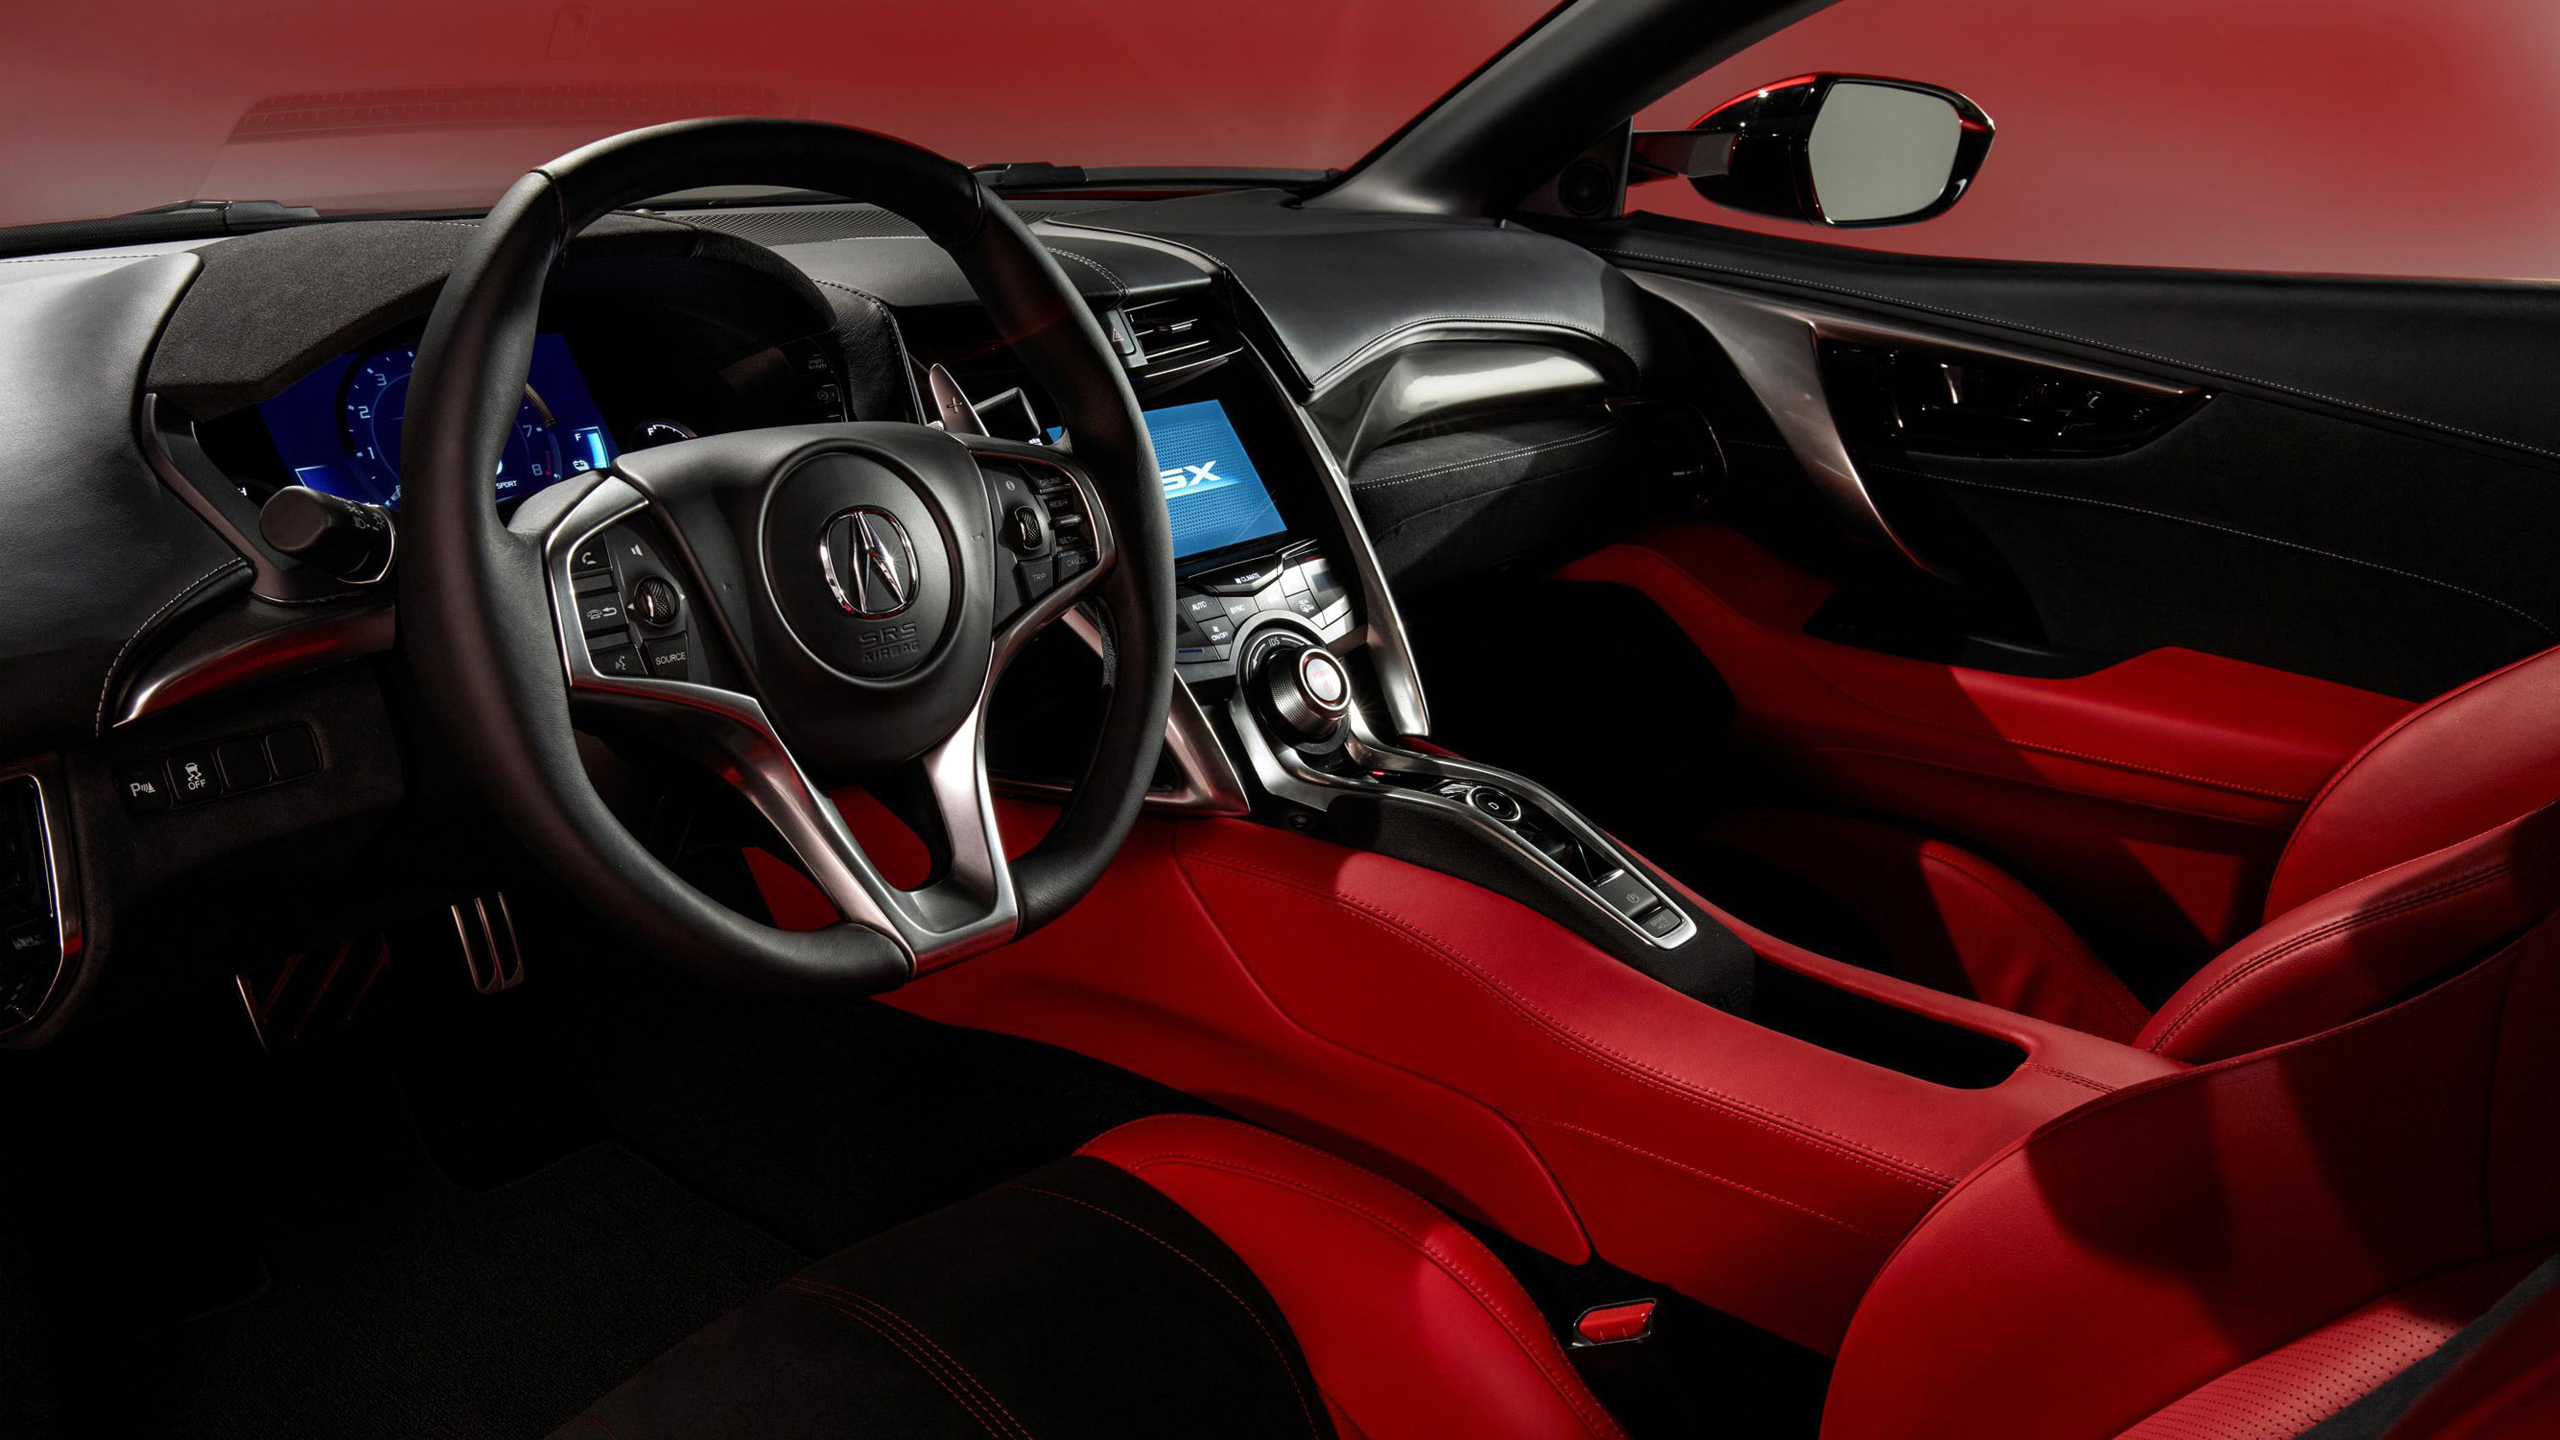 Acura Nsx 2017 Interior Wallpapers Supercars Gallery